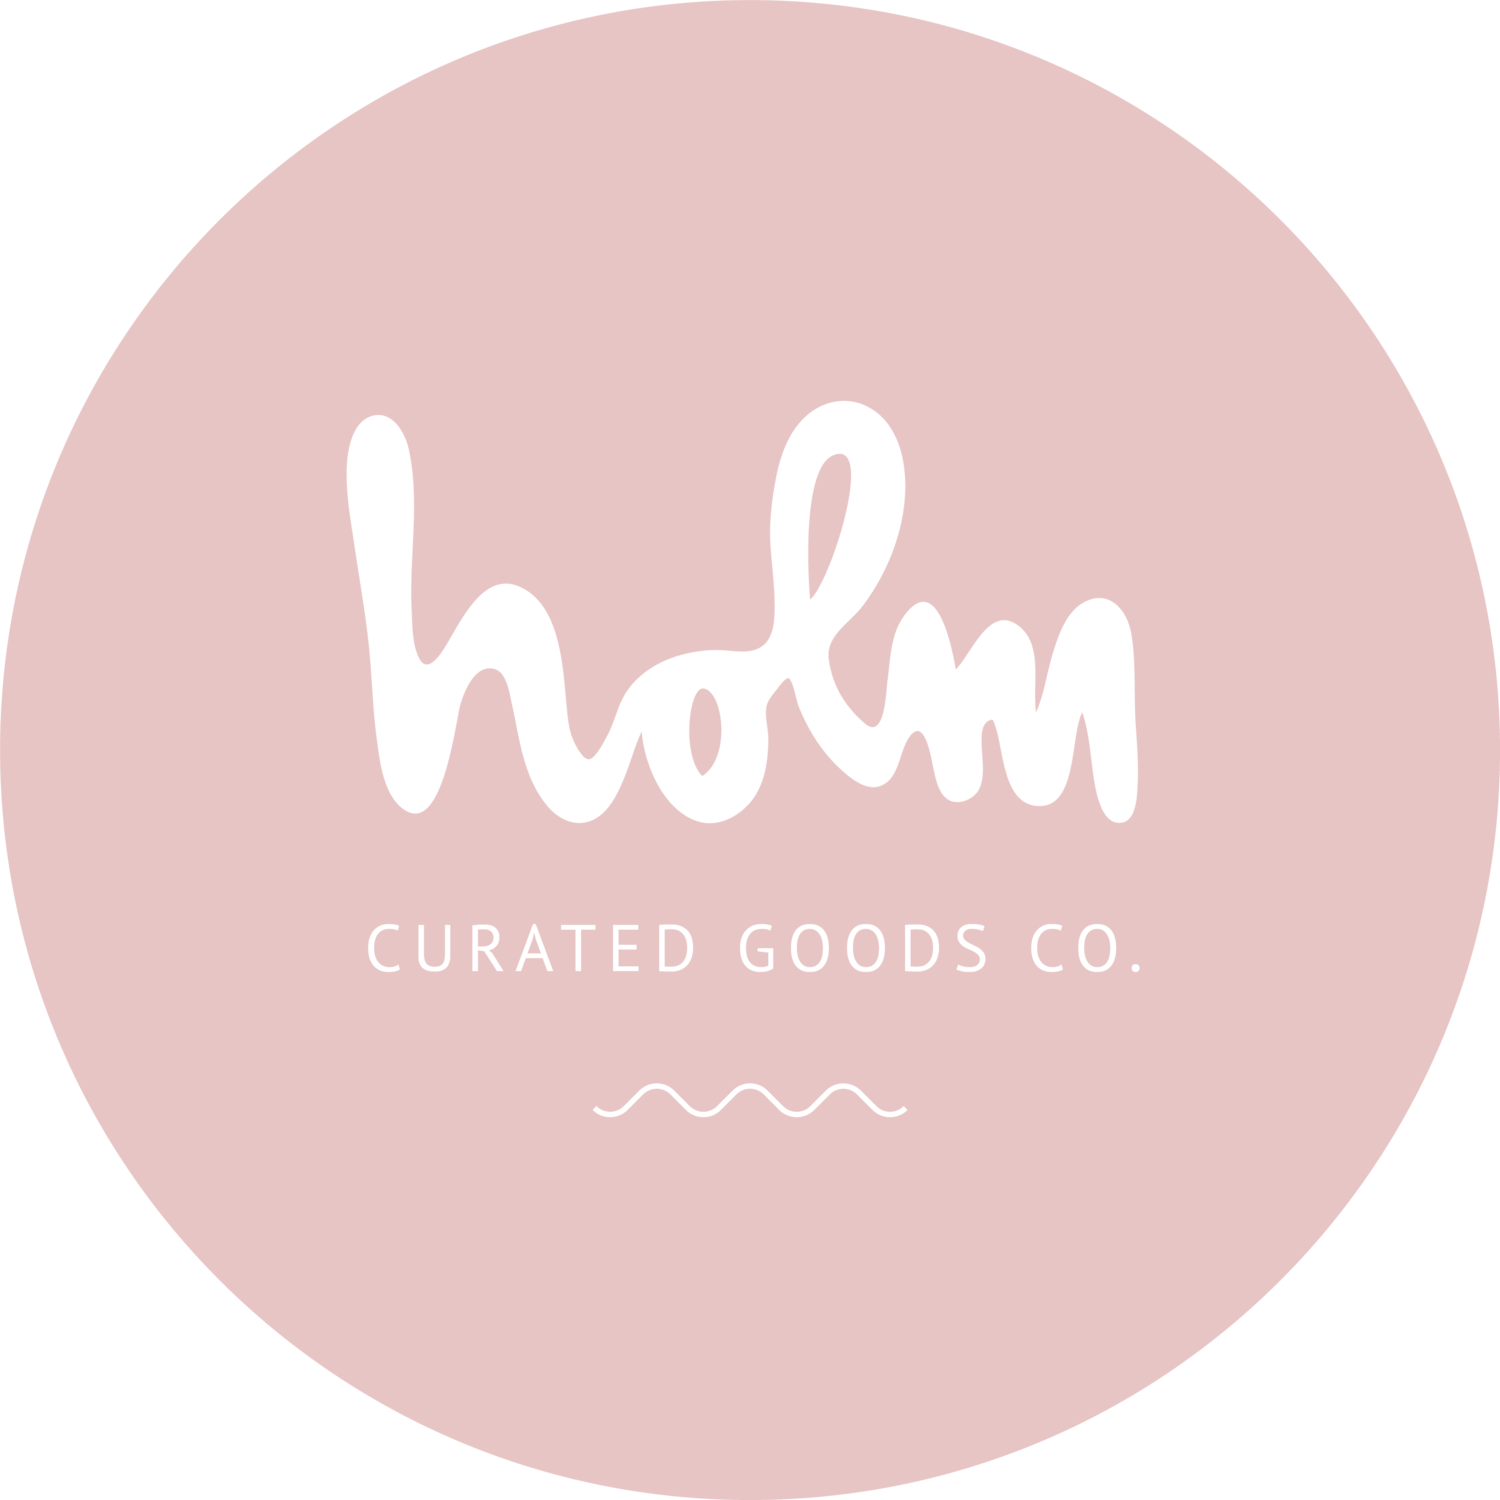 HOLM CURATED GOODS CO.